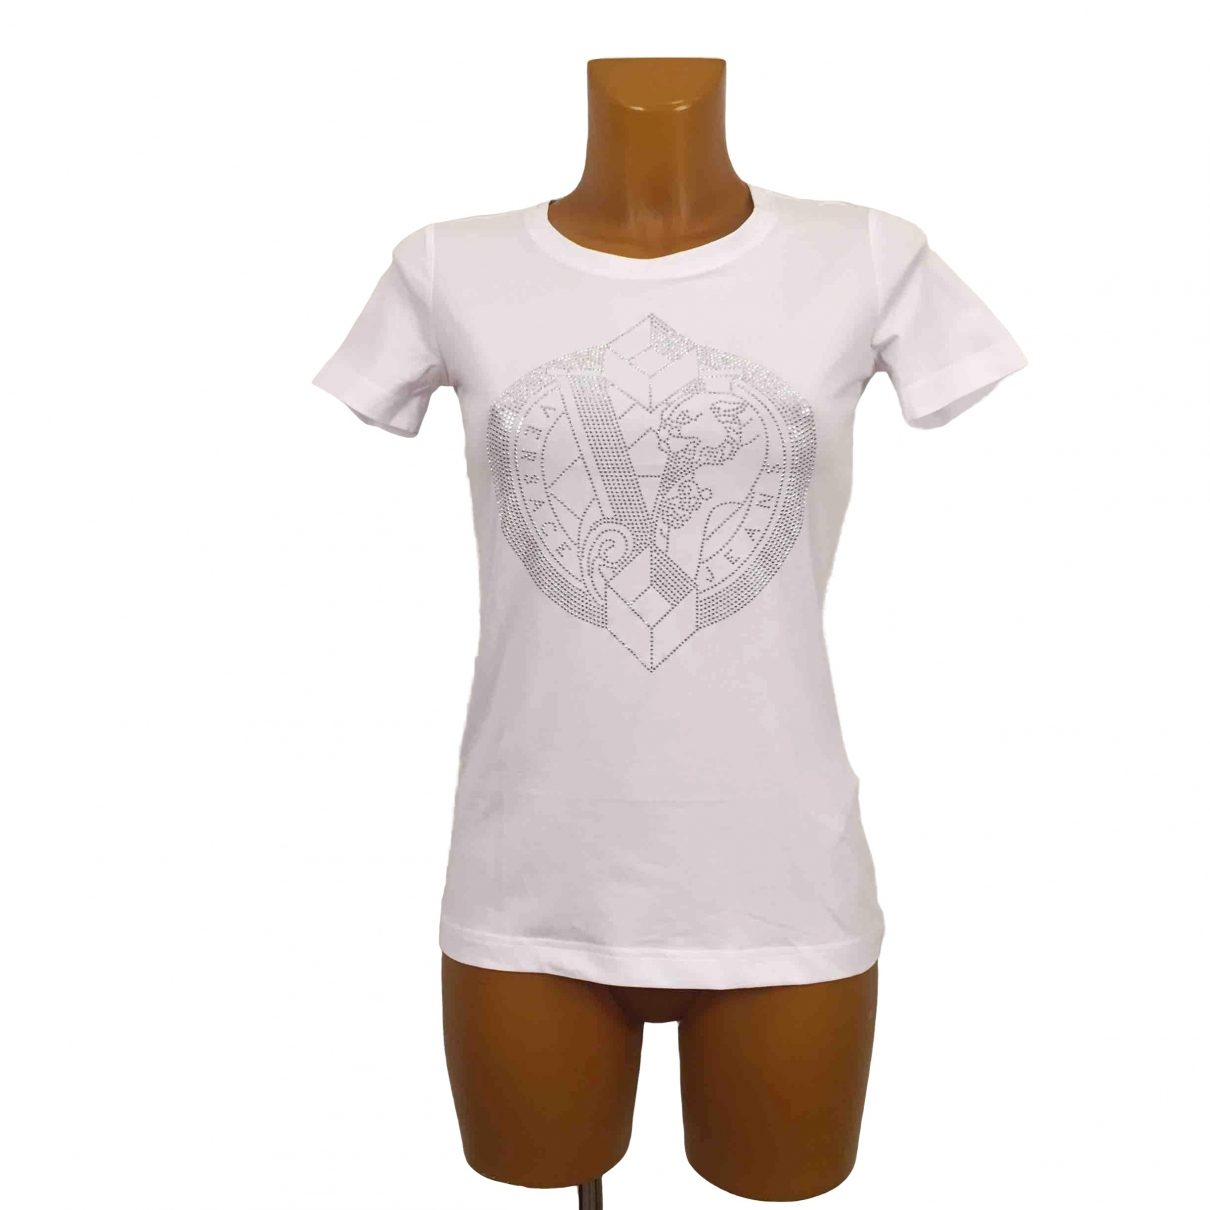 Versace Jeans \N White Cotton  top for Women XS International